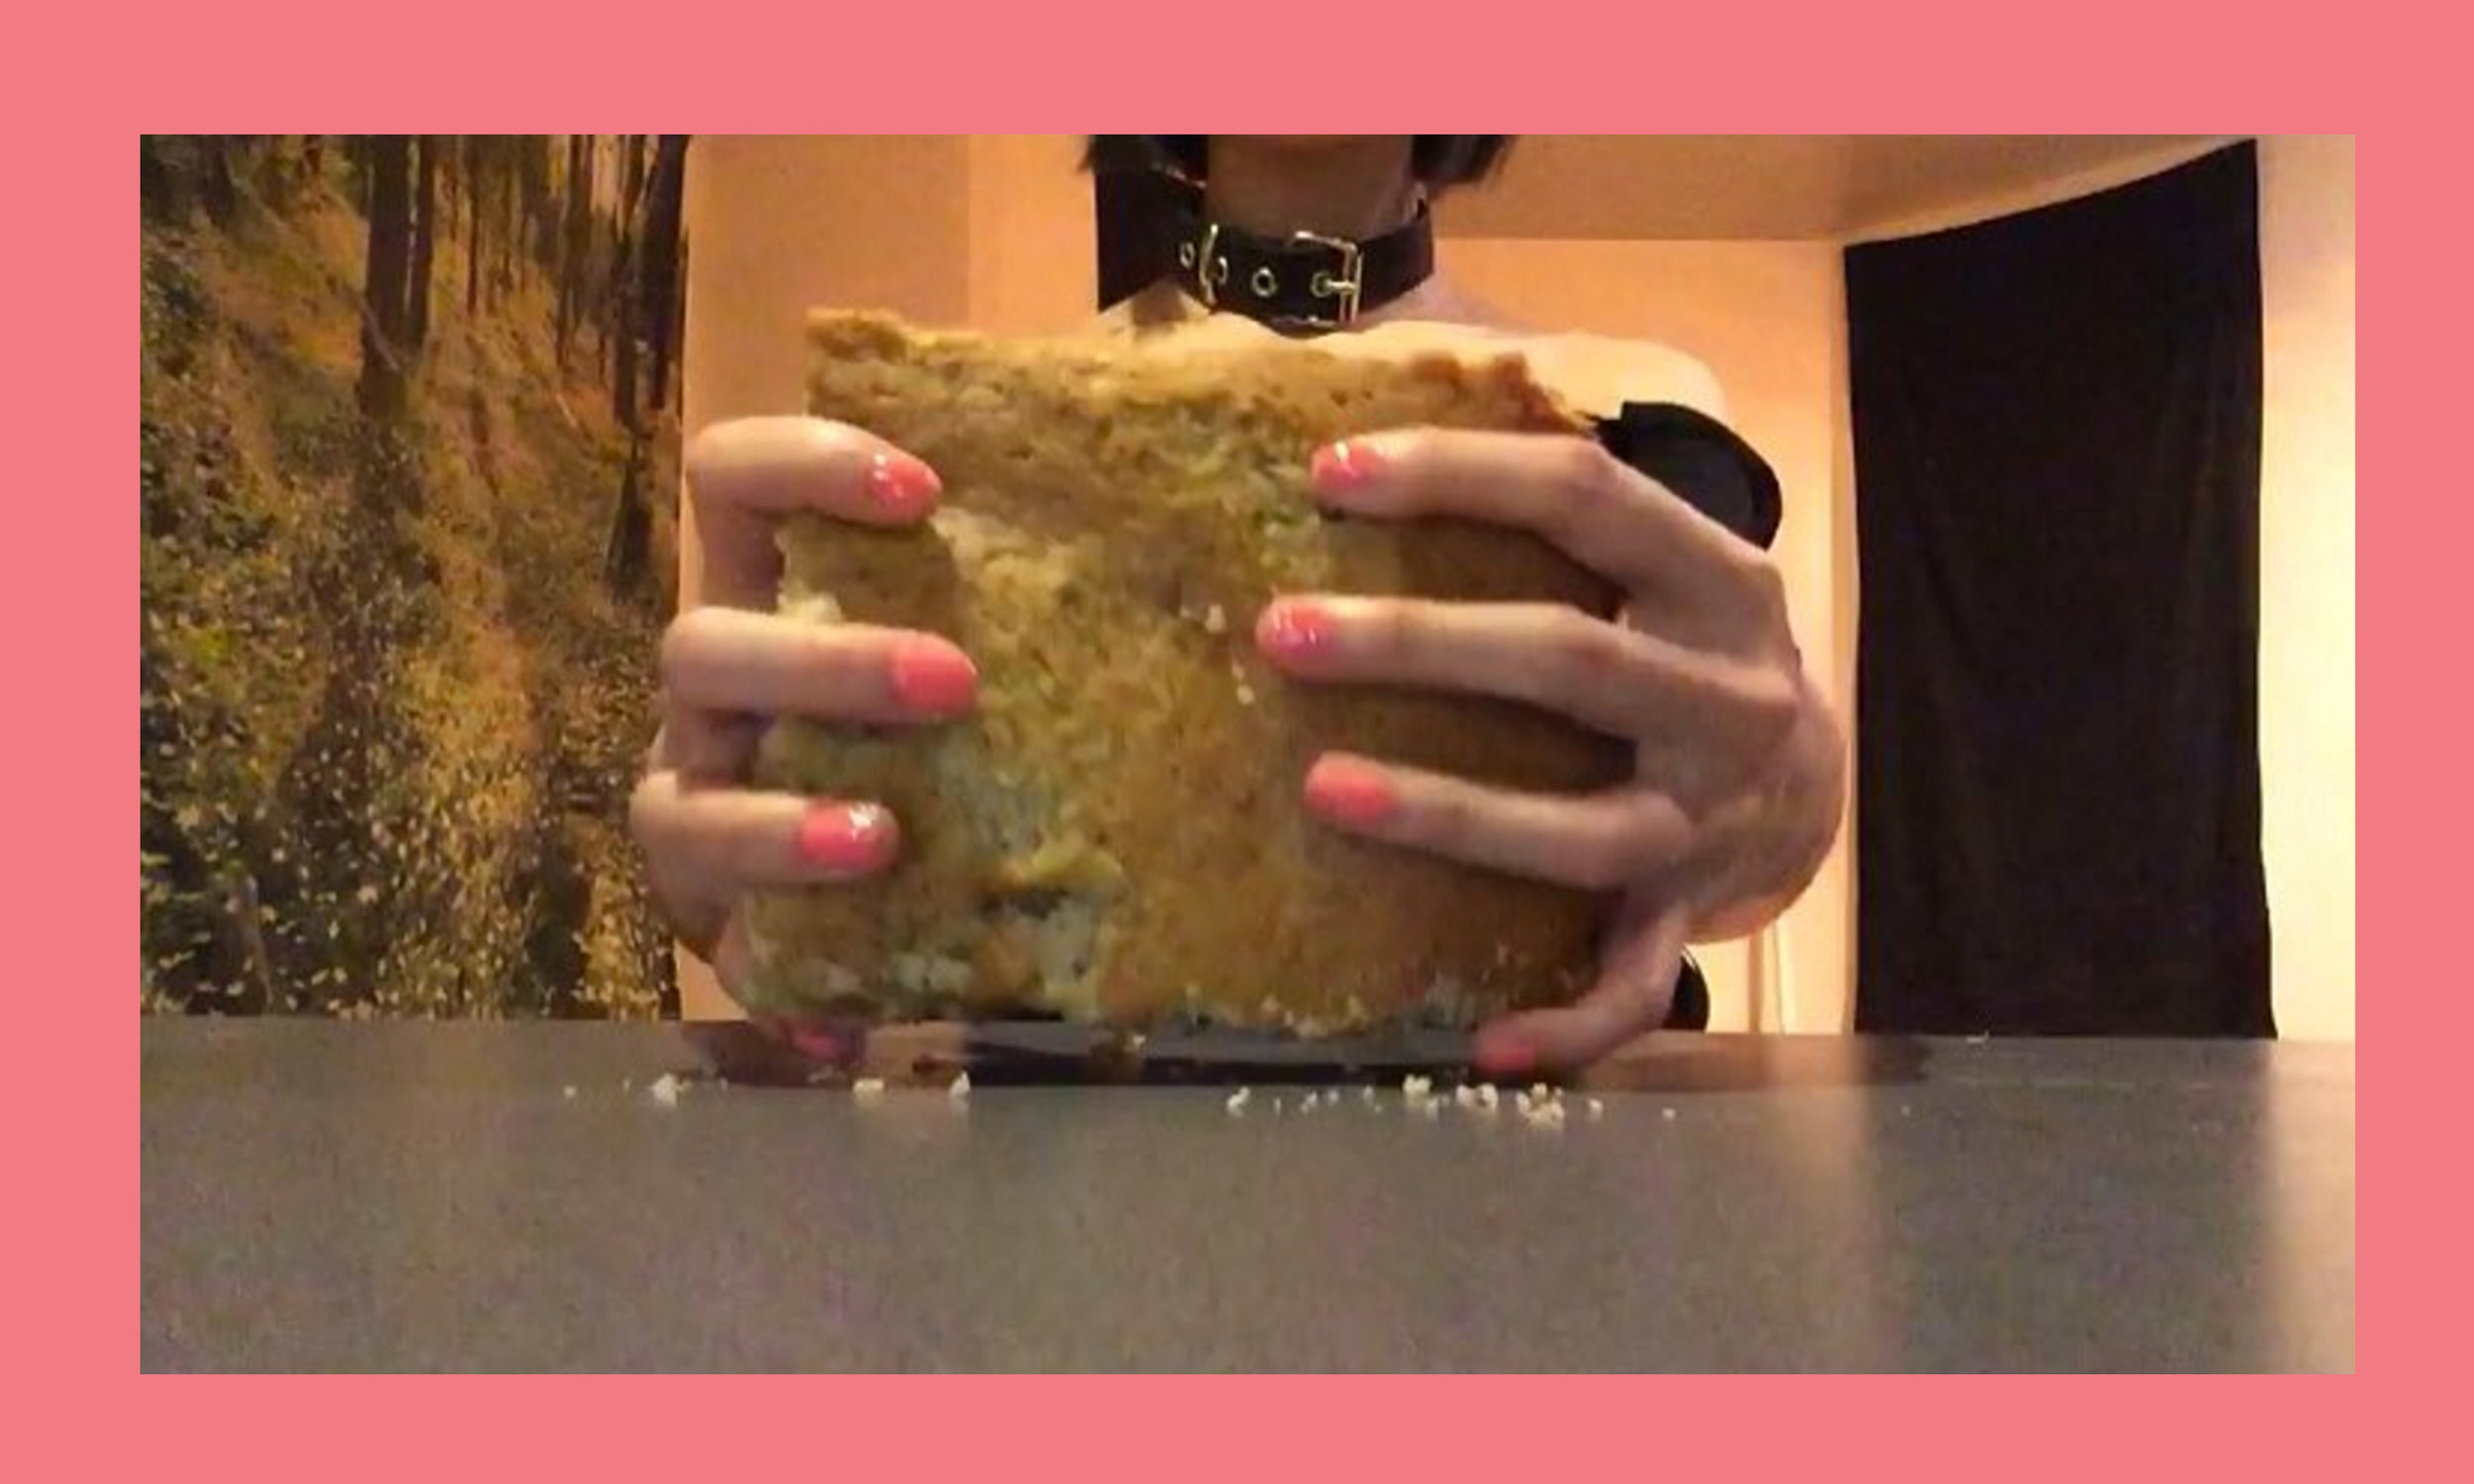 Breadface is an anonymous Instagram account founded by the simple love of smashing one's face into bread. - Banana speaks with the nebulous and viral sensation and baked her a banana bread loaf to get the full experience.Watch our bread get smushed on Instagram